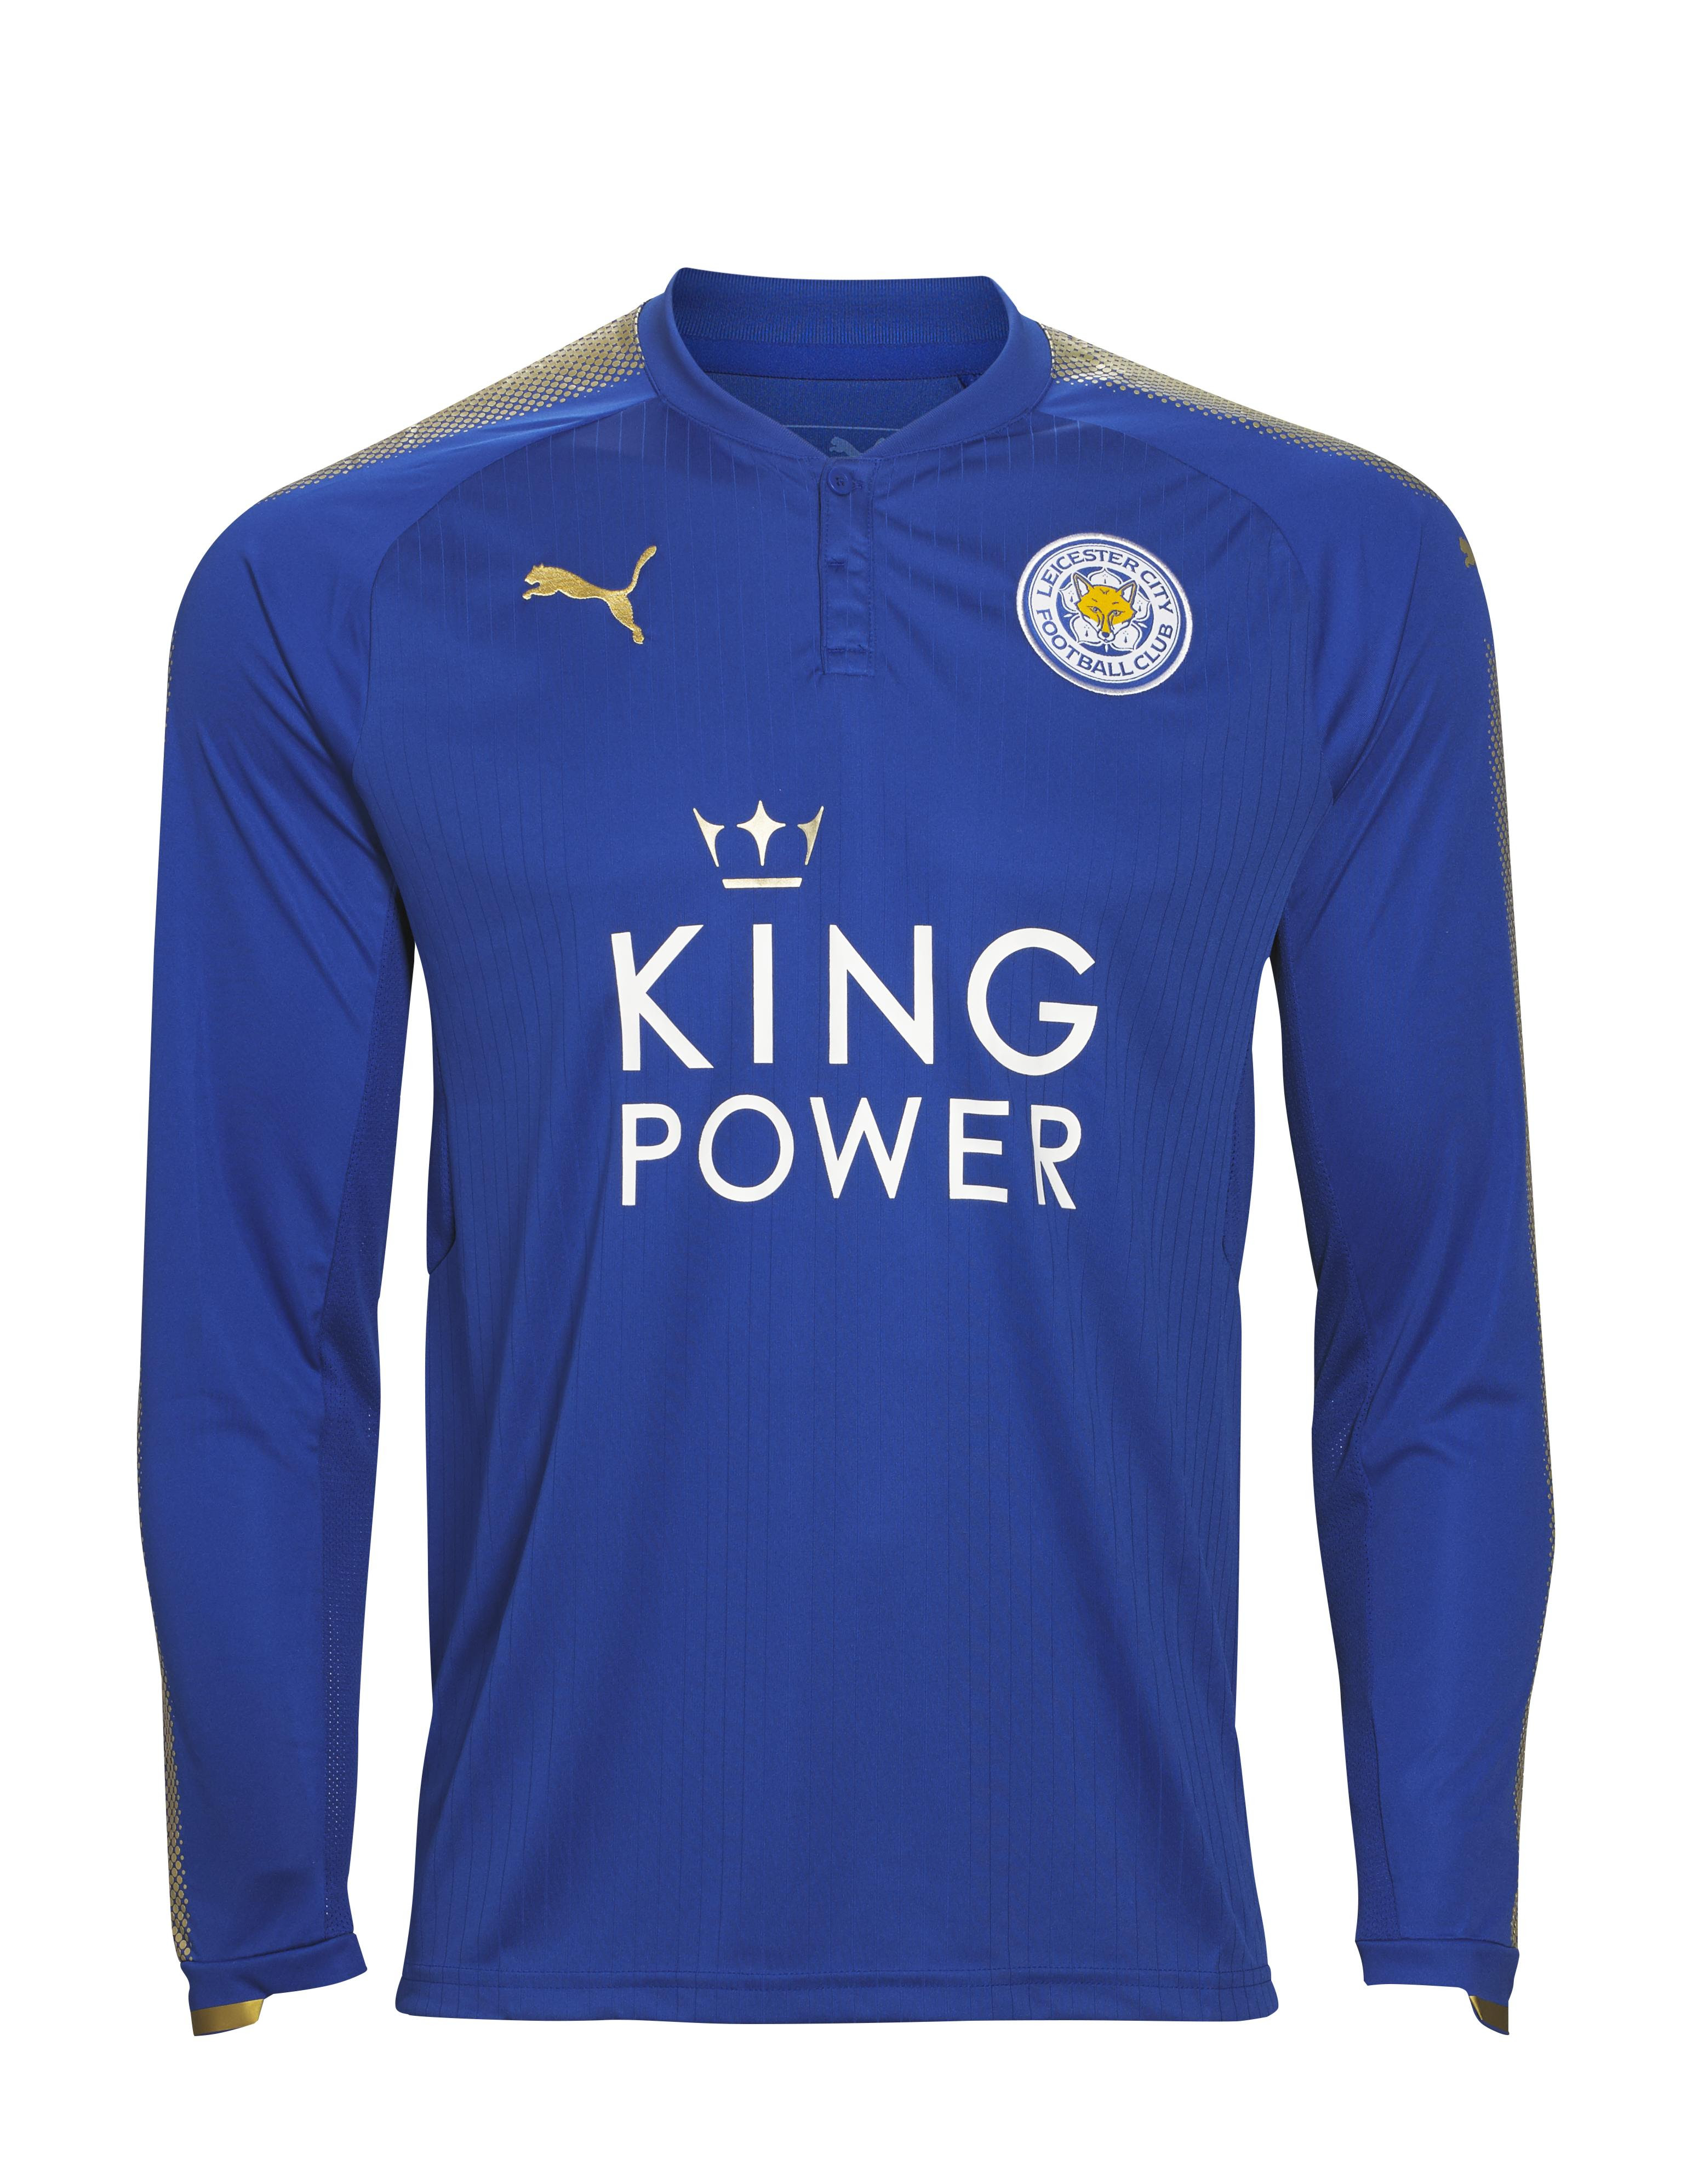 Leicester City Kit 512x512